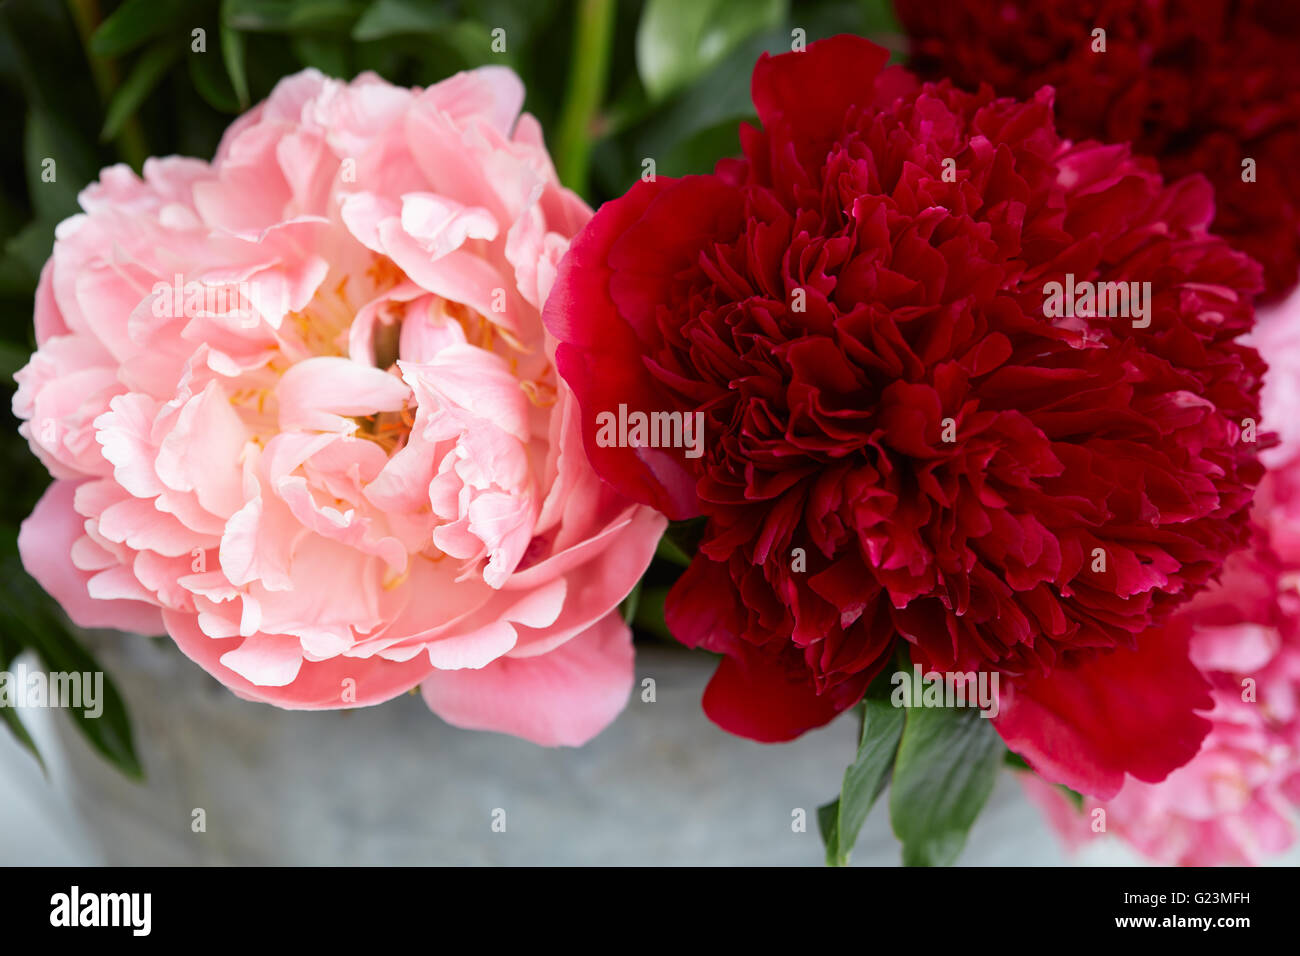 Two peony flowers in red and pink colors with leaves Stock Photo ...